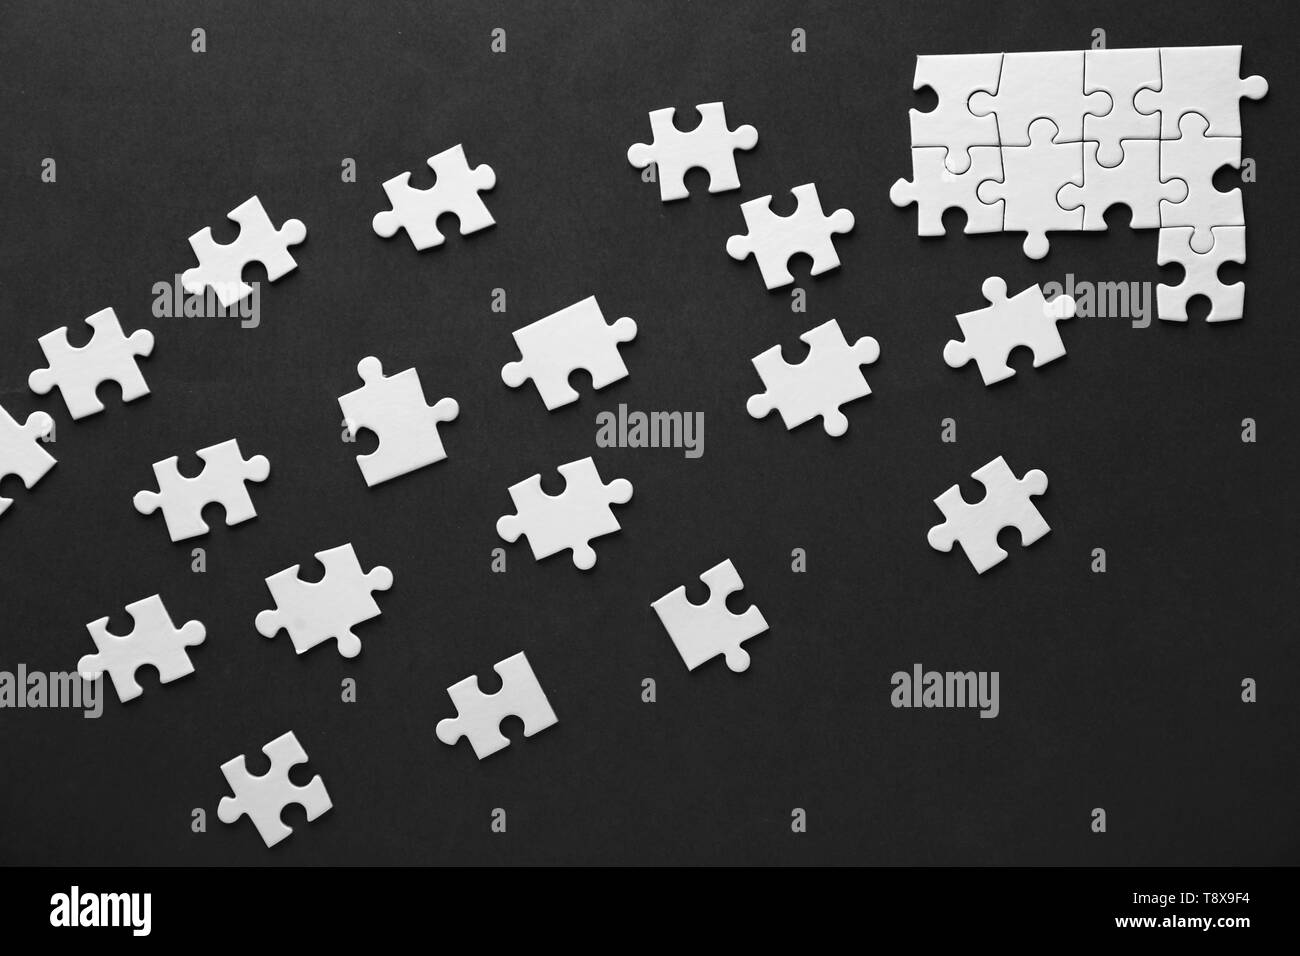 Incomplete jigsaw puzzle on color background - Stock Image